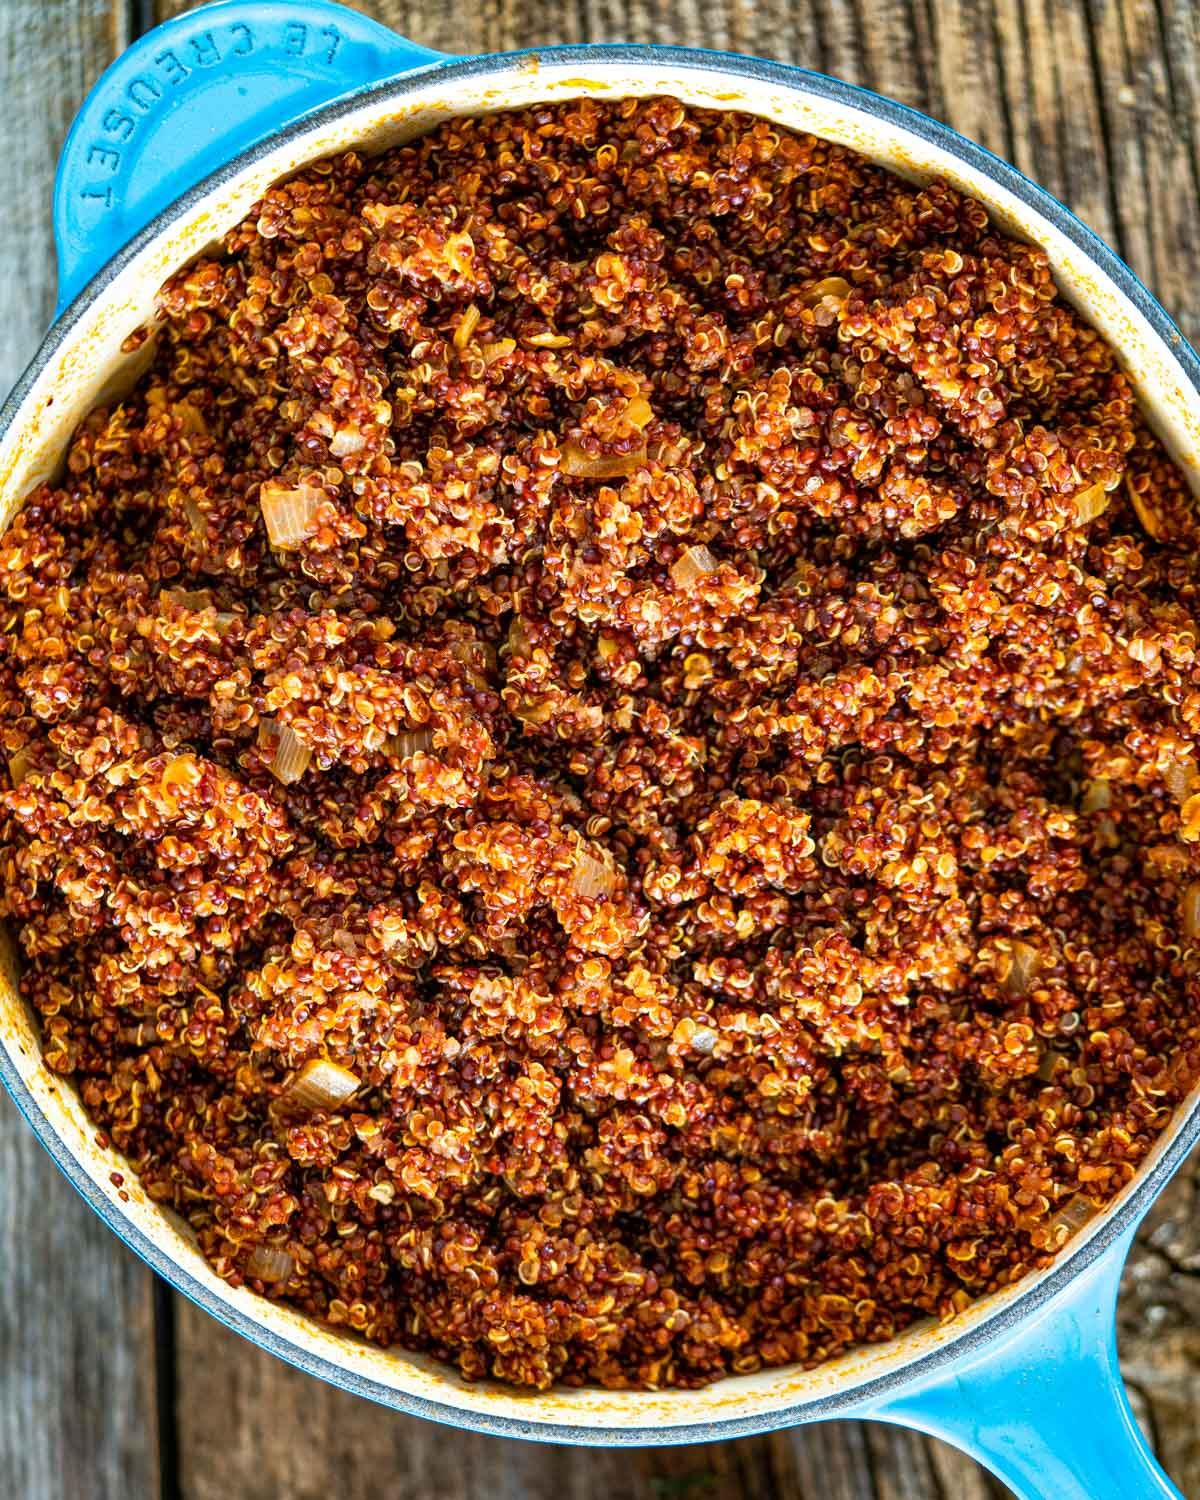 cooked red quinoa in a blue Dutch oven